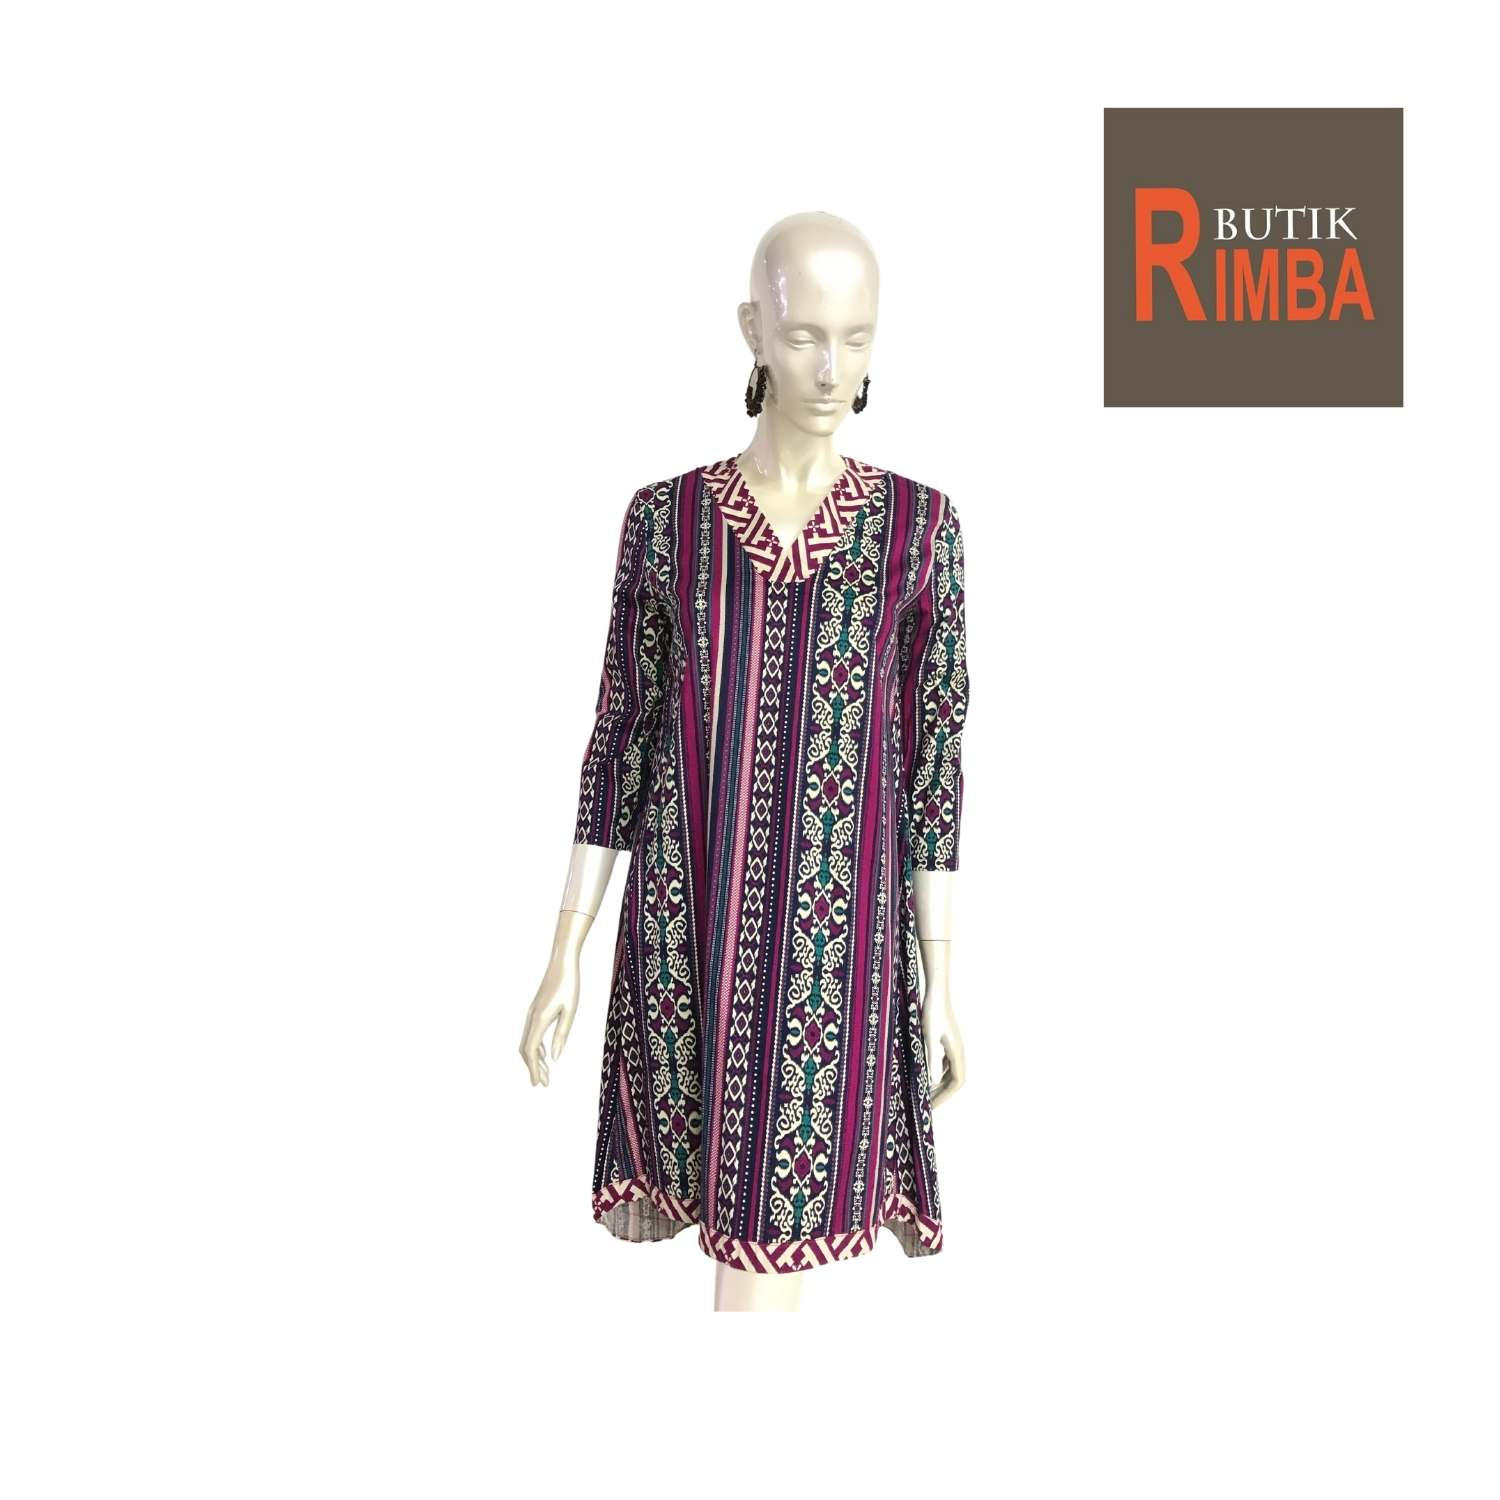 MODERN DRESS BATIK COTTON STRETCHABLE KNEE LENGTH FREE SIZE FOR FASHIONABLE WOMEN IN MIND 09